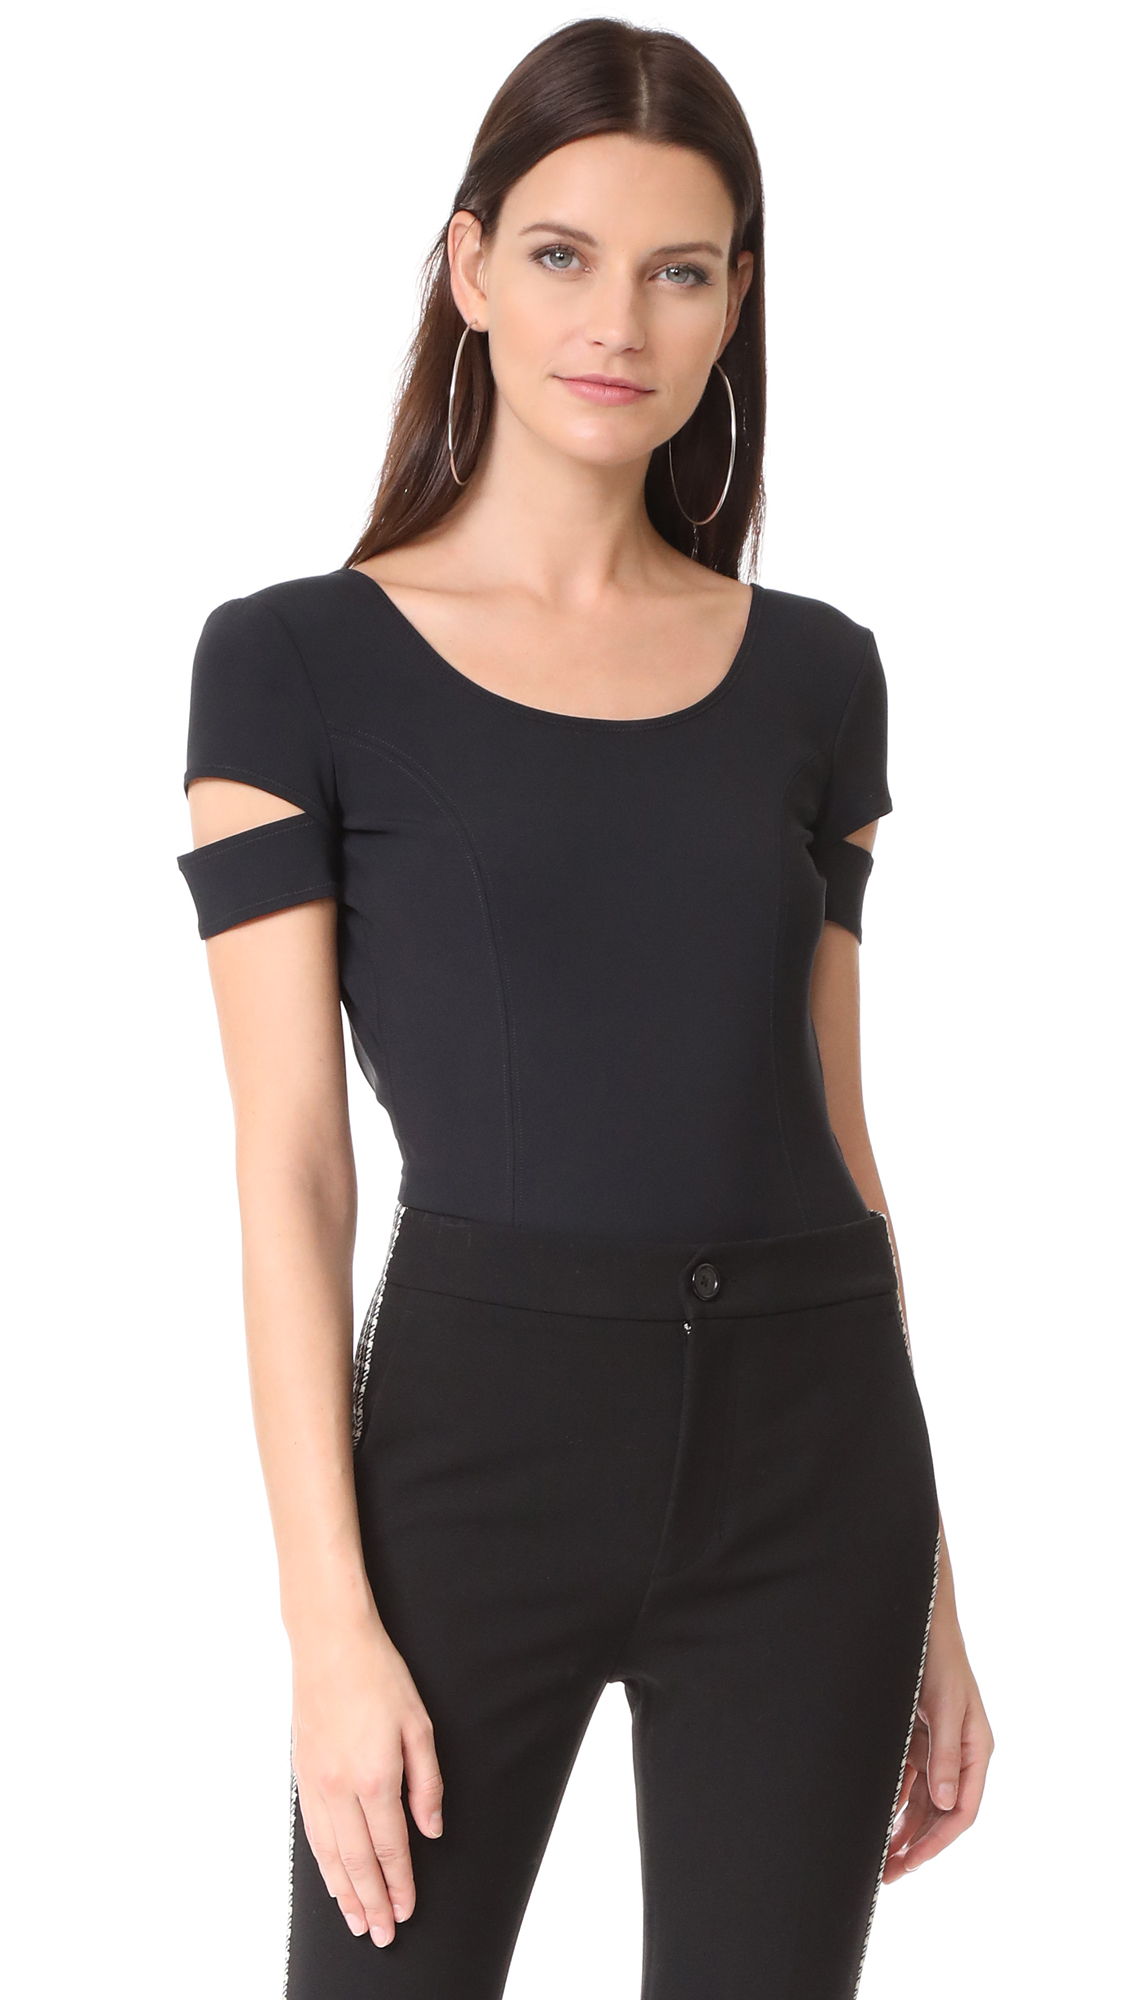 Helmut Lang Low Back Bodysuit - Black